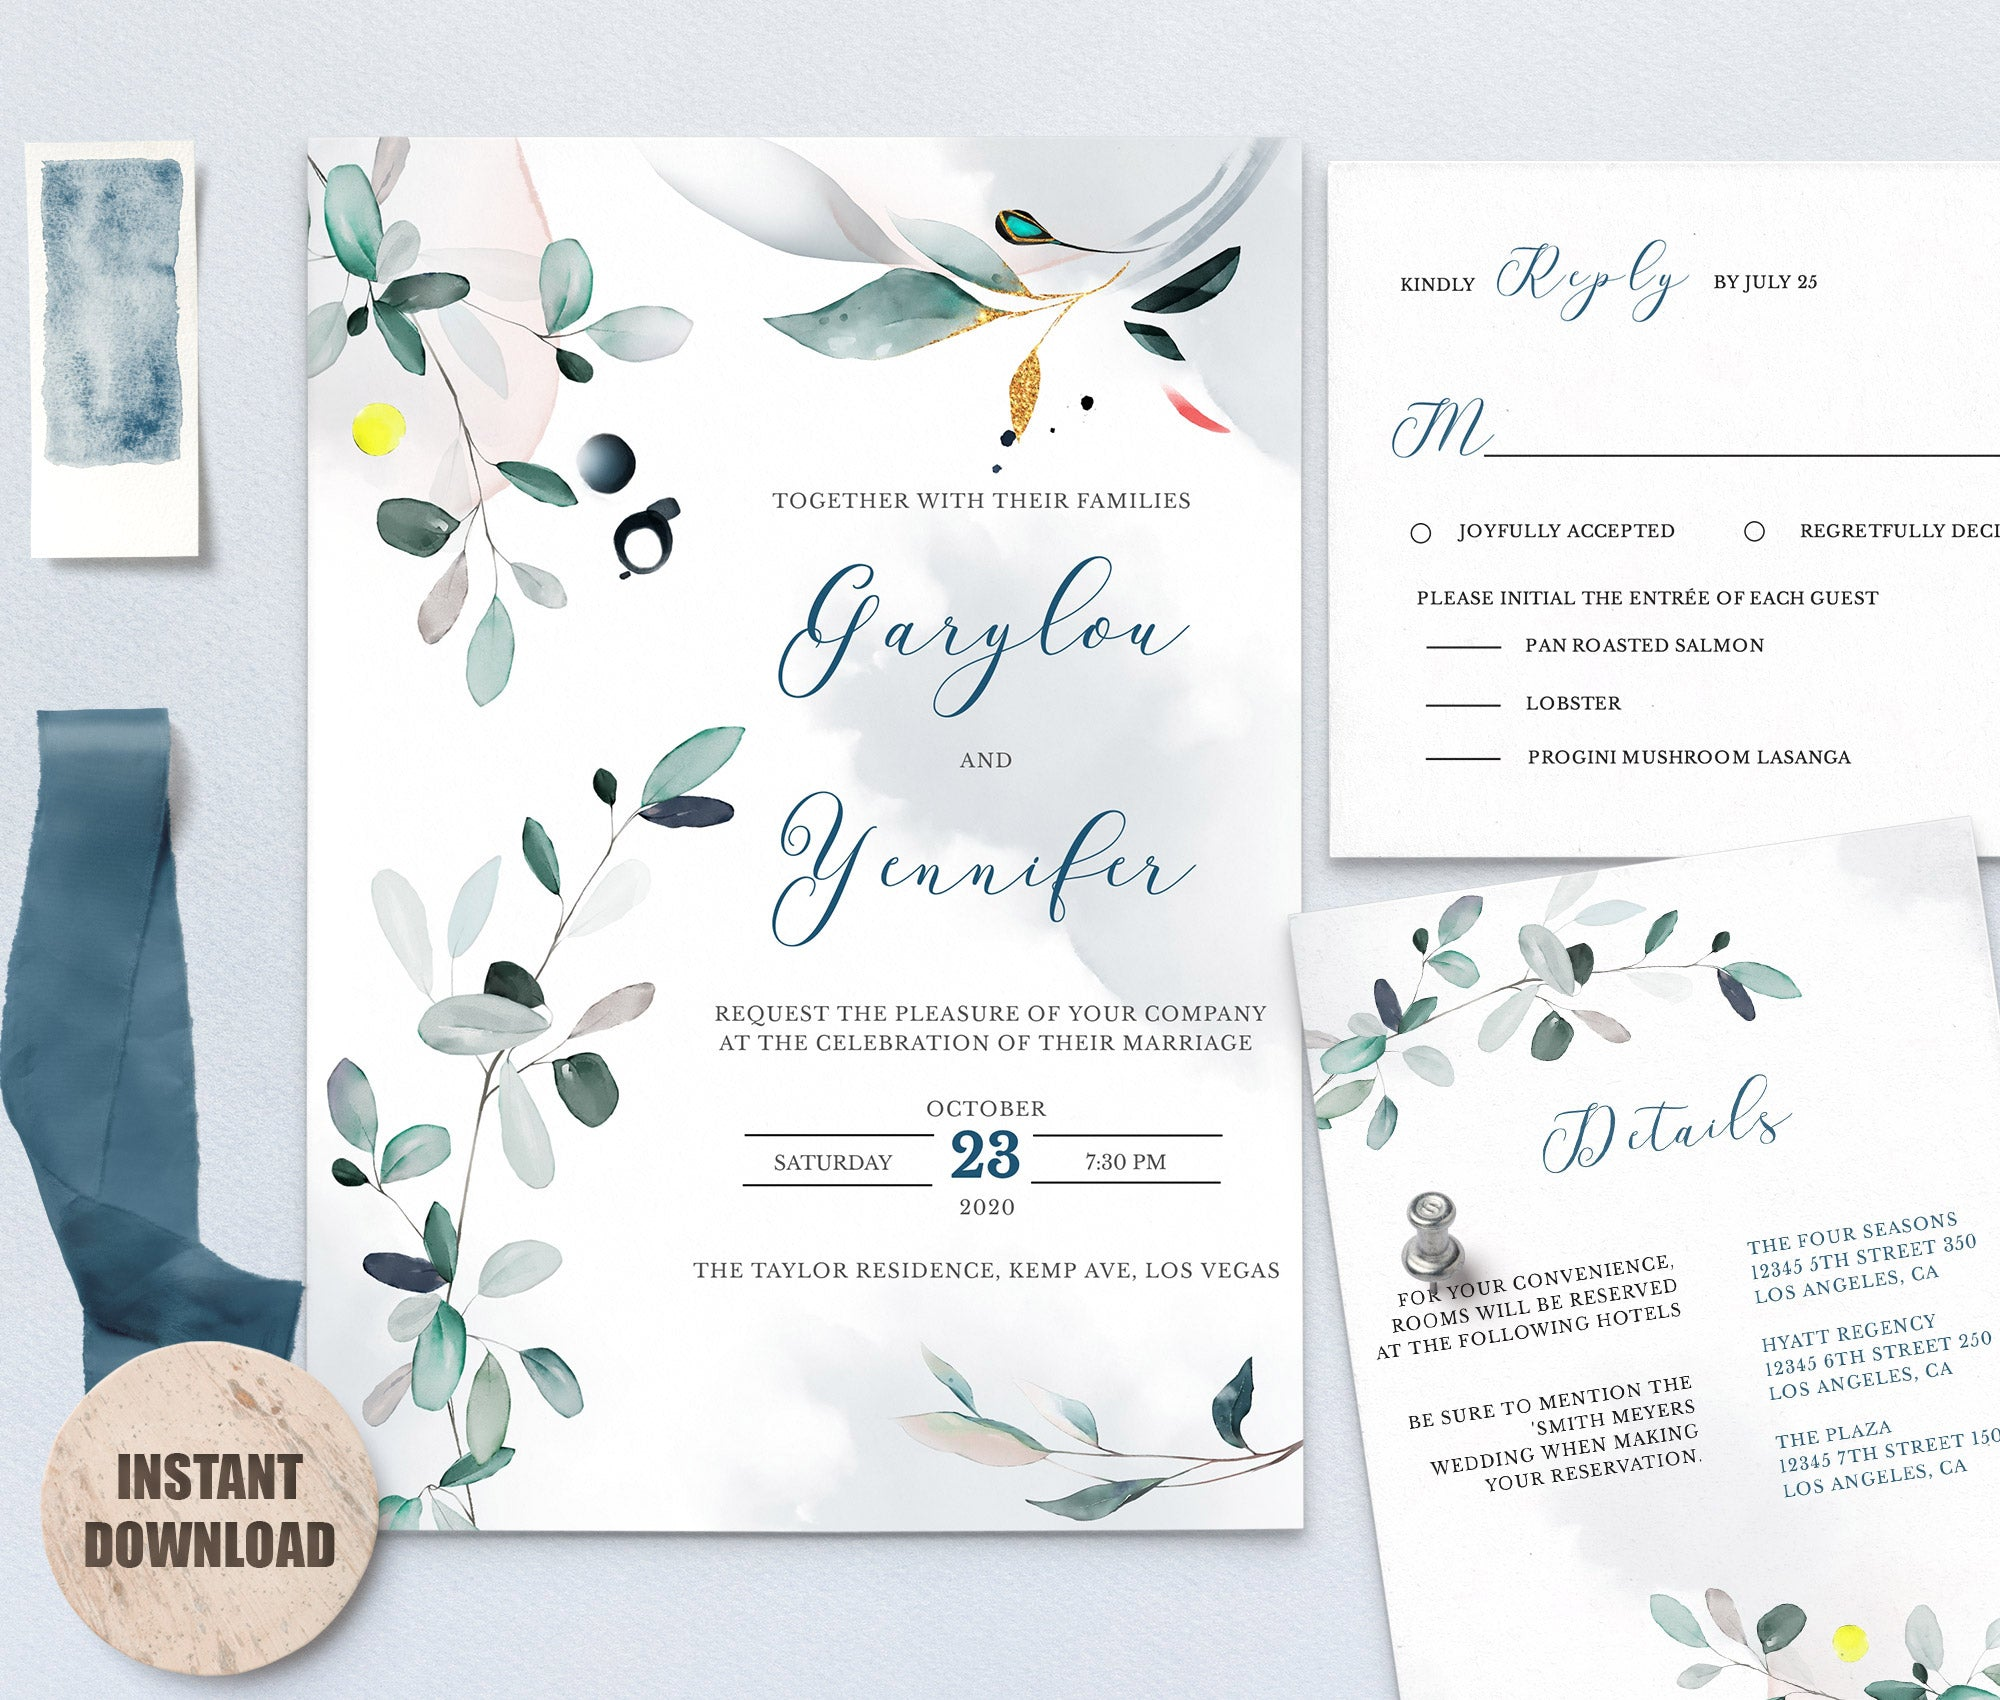 SPMR - Wedding Template Bundles set 9 - Greenlanderdesign